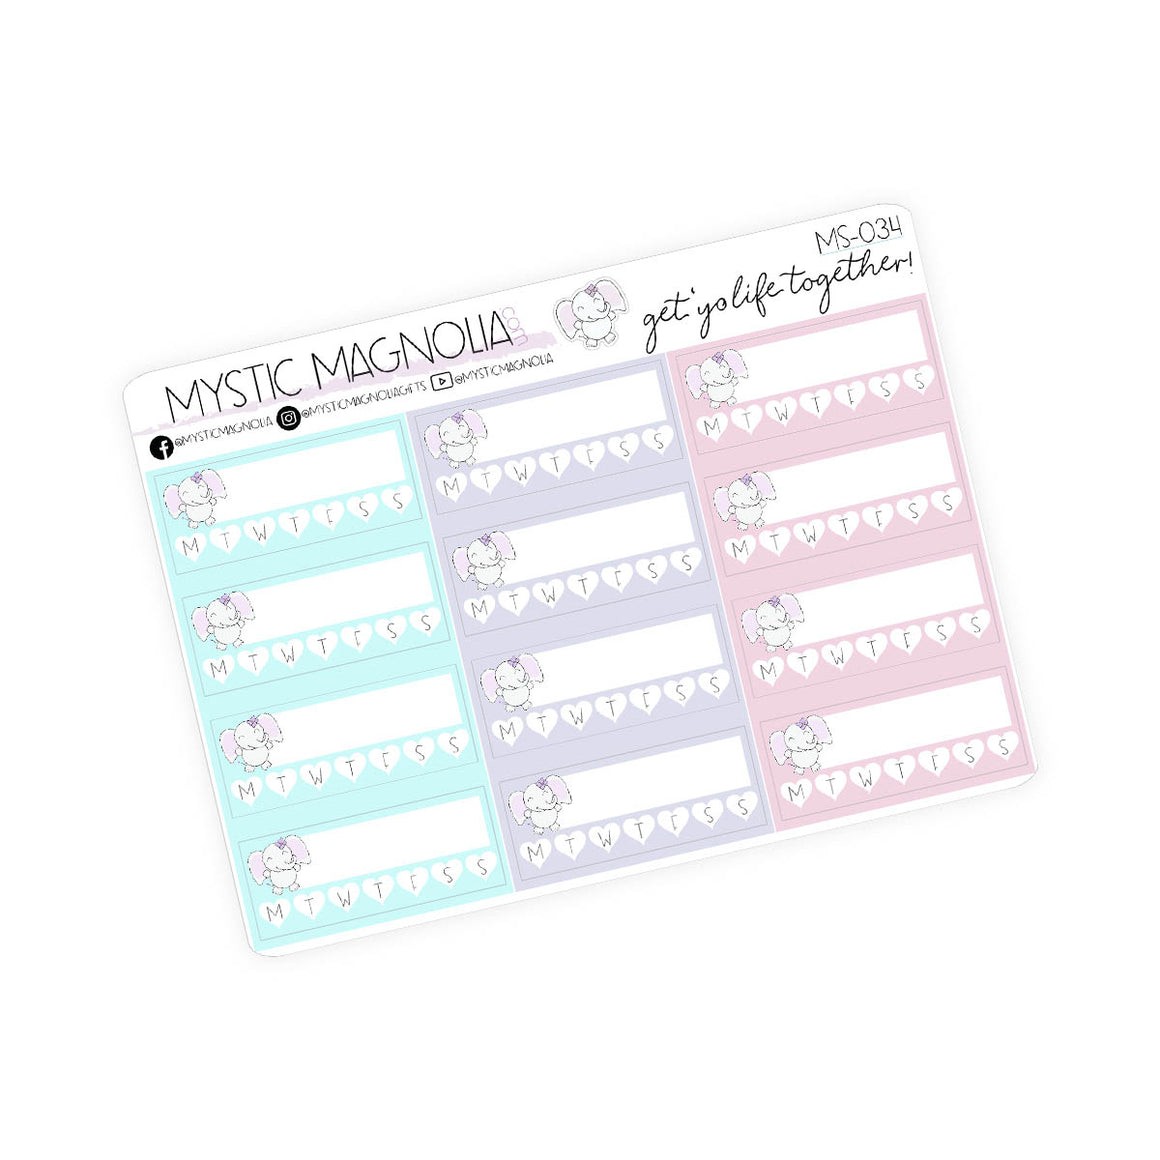 Mystic habit trackers - Planner Stickers